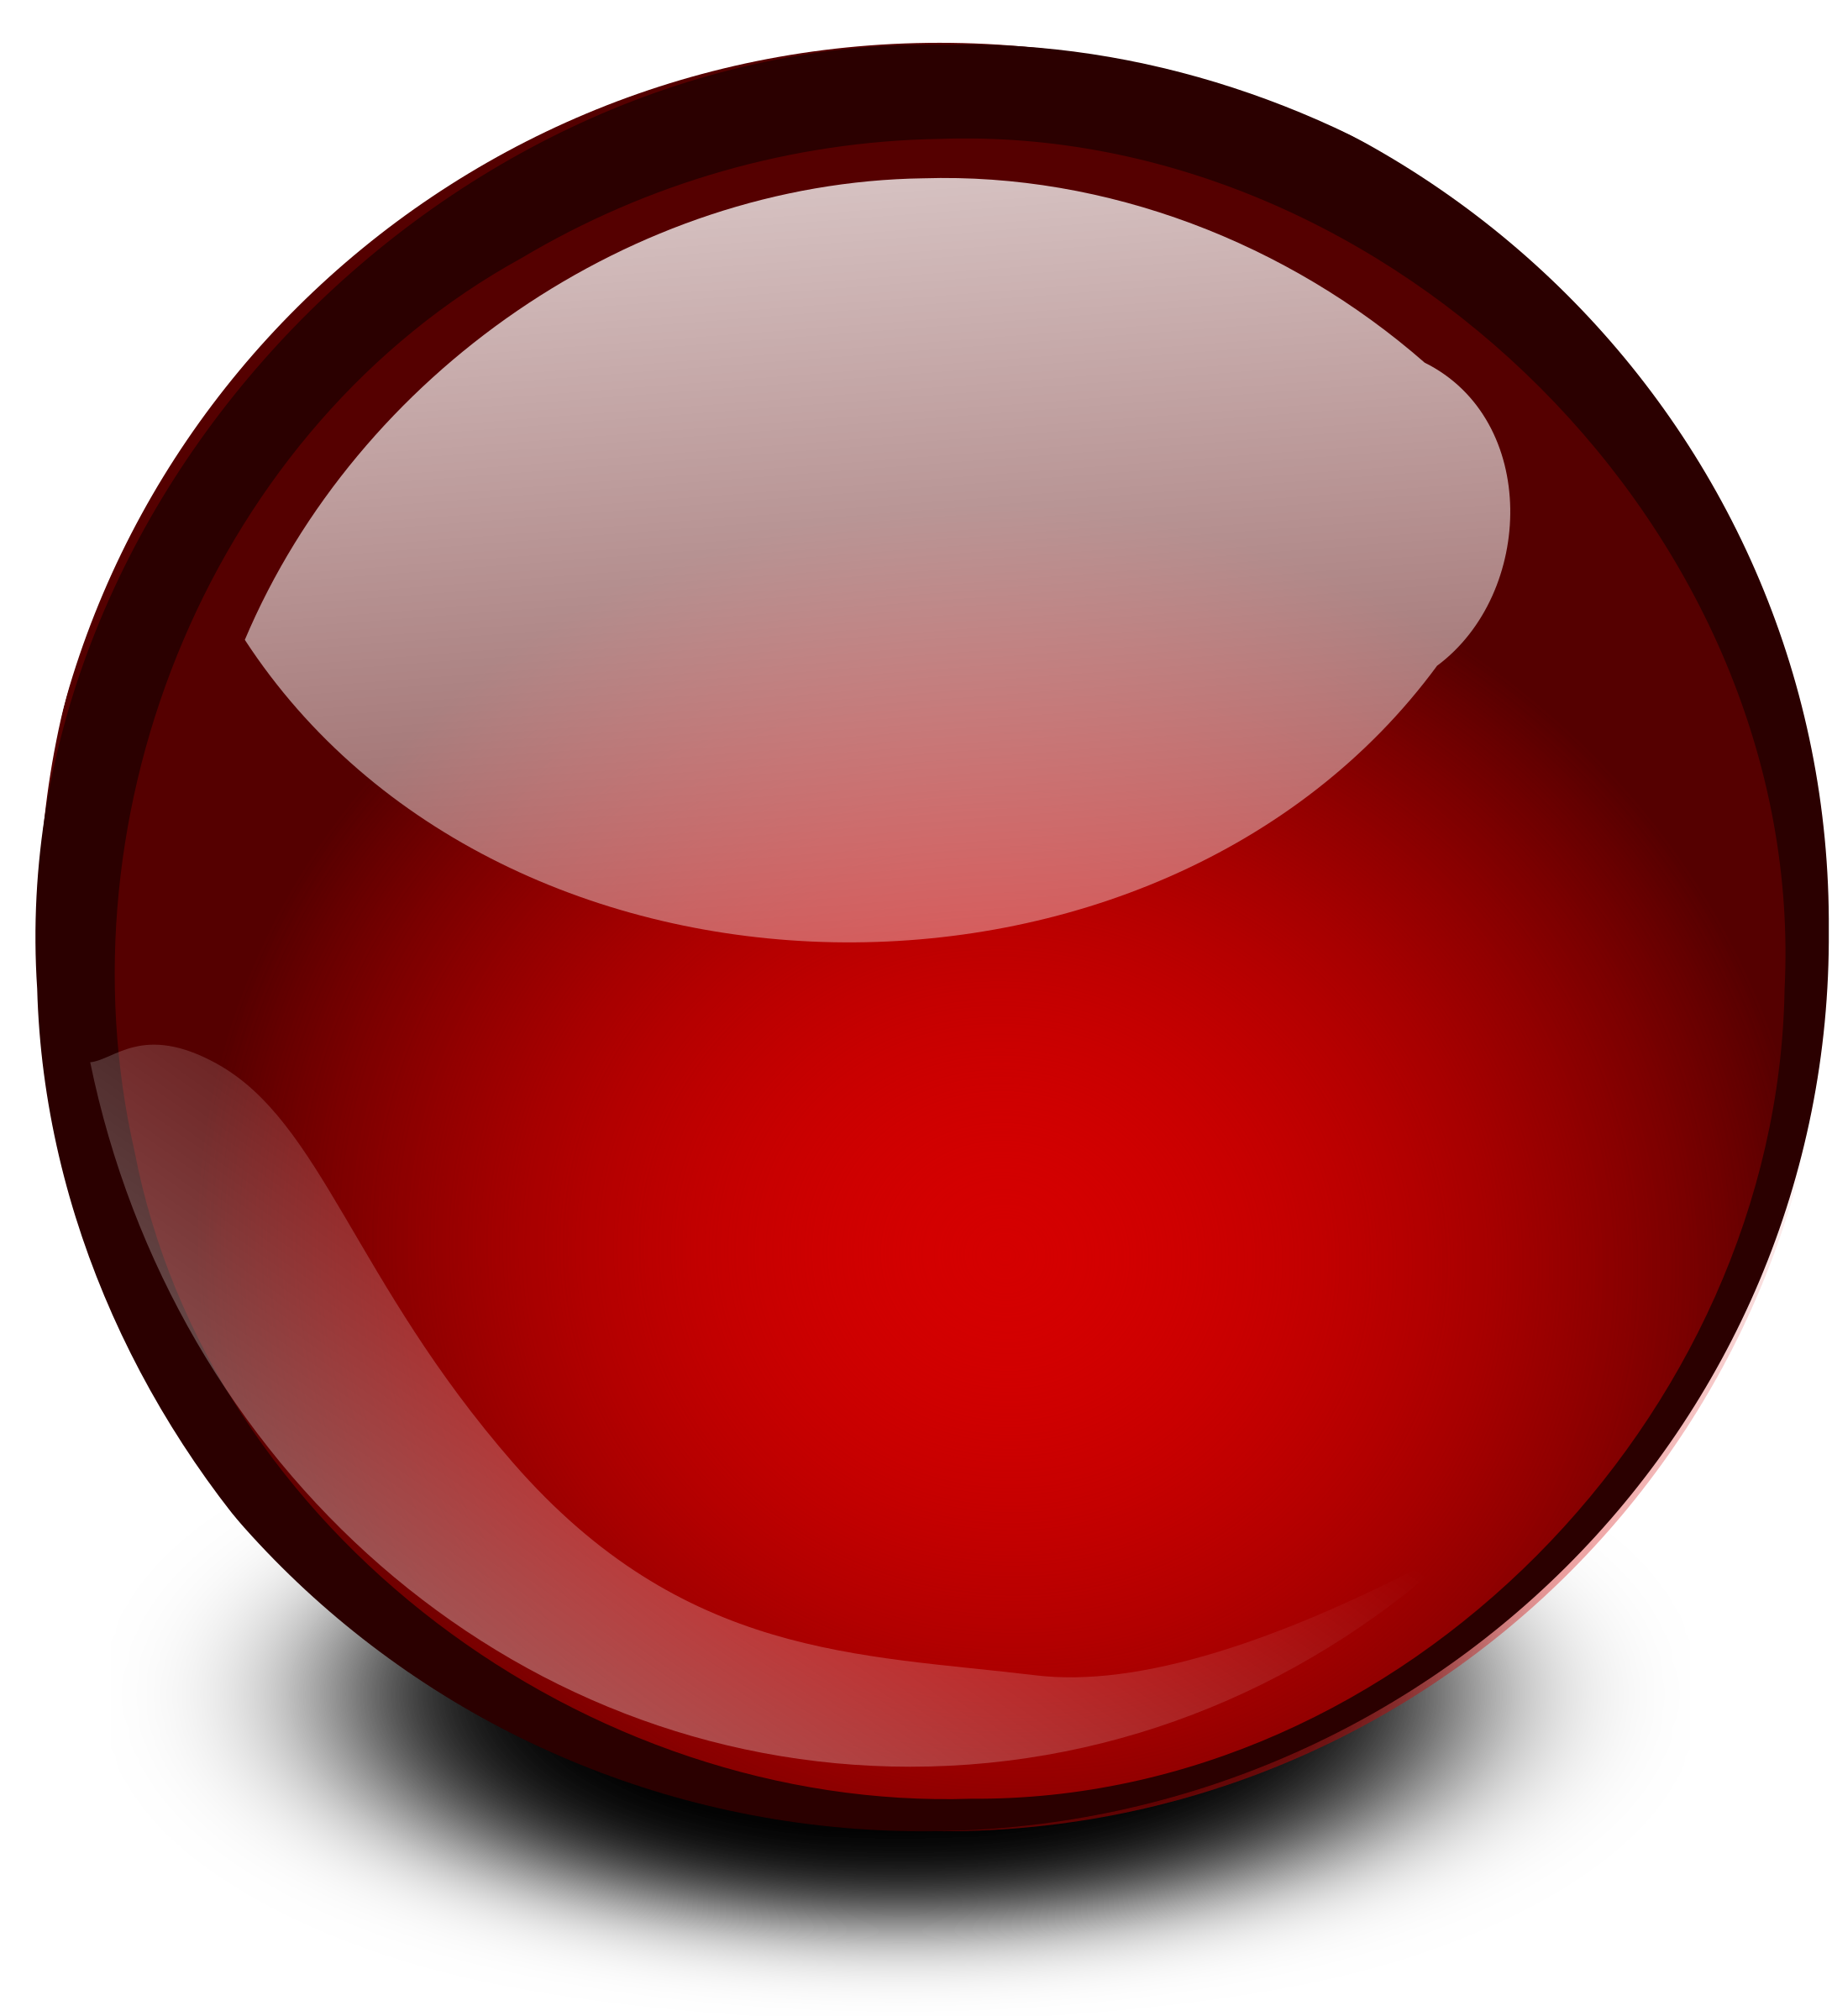 png royalty free download Marbles clipart orb. Red glossy icons png.